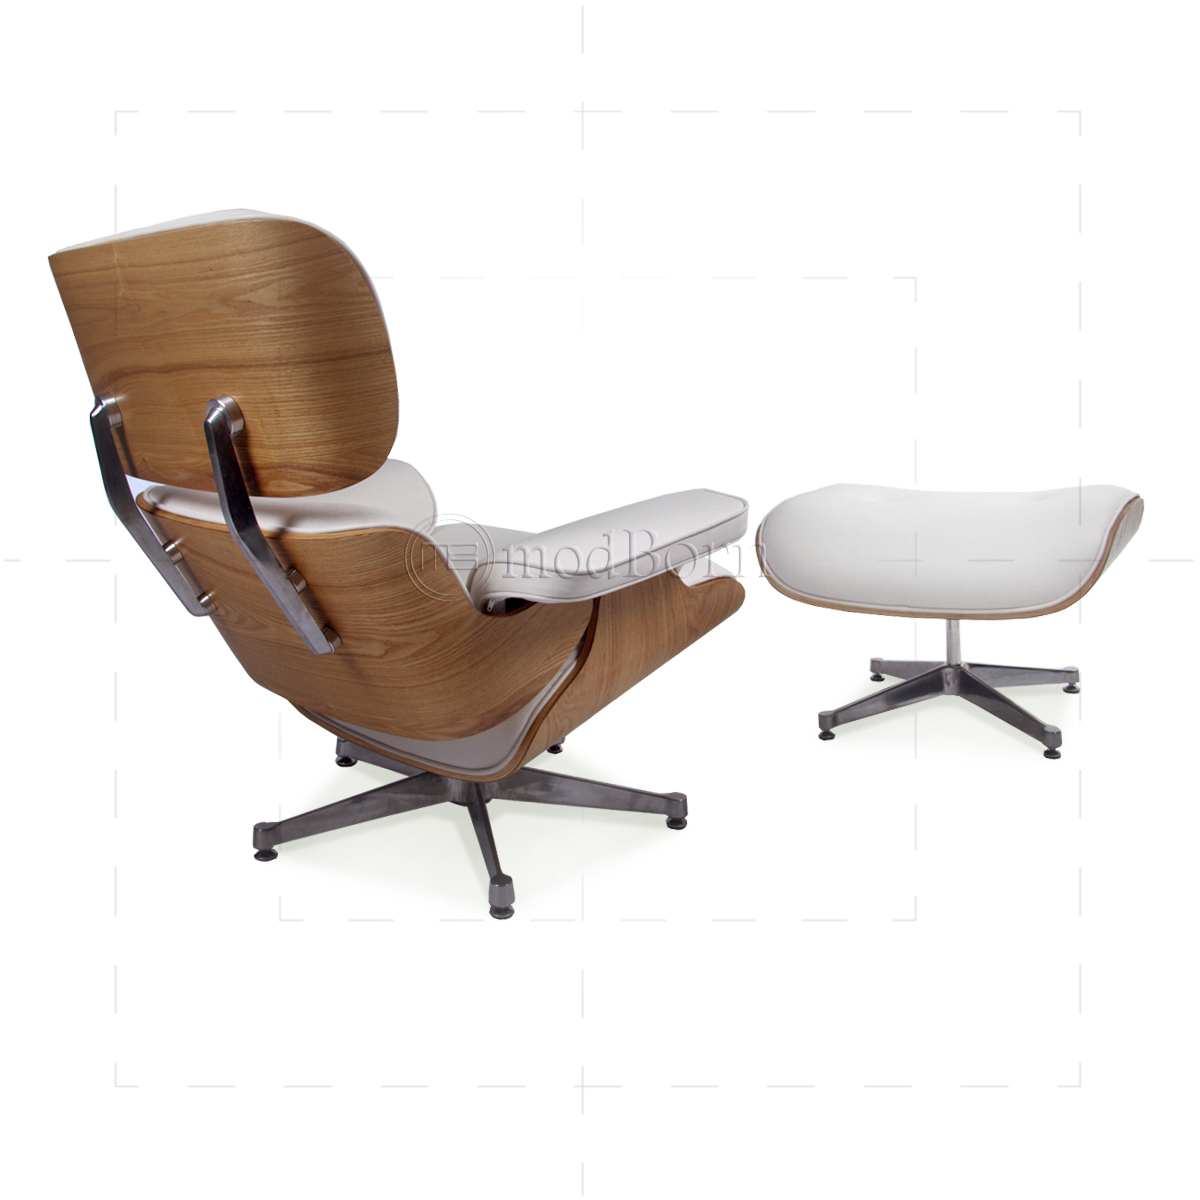 Superb Eames Style Lounge Chair And Ottoman White Leather Ash Unemploymentrelief Wooden Chair Designs For Living Room Unemploymentrelieforg